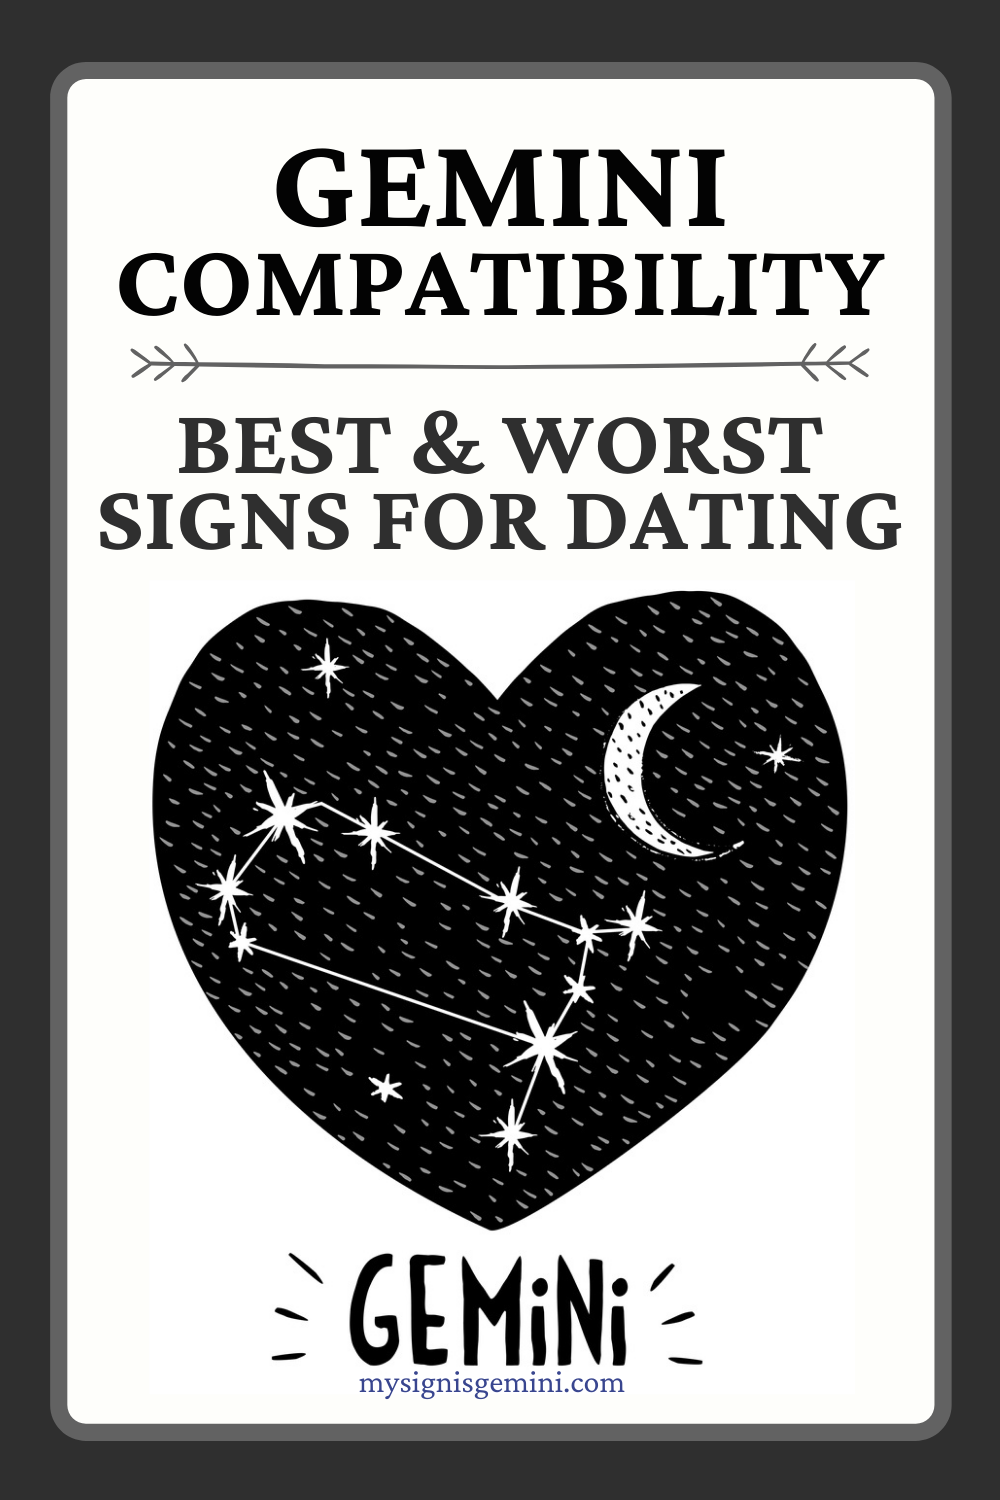 Gemini Compatibility For Love_ Best And Worst Signs For Dating #gemini #geminilove #geminisign #astrology #zodiac